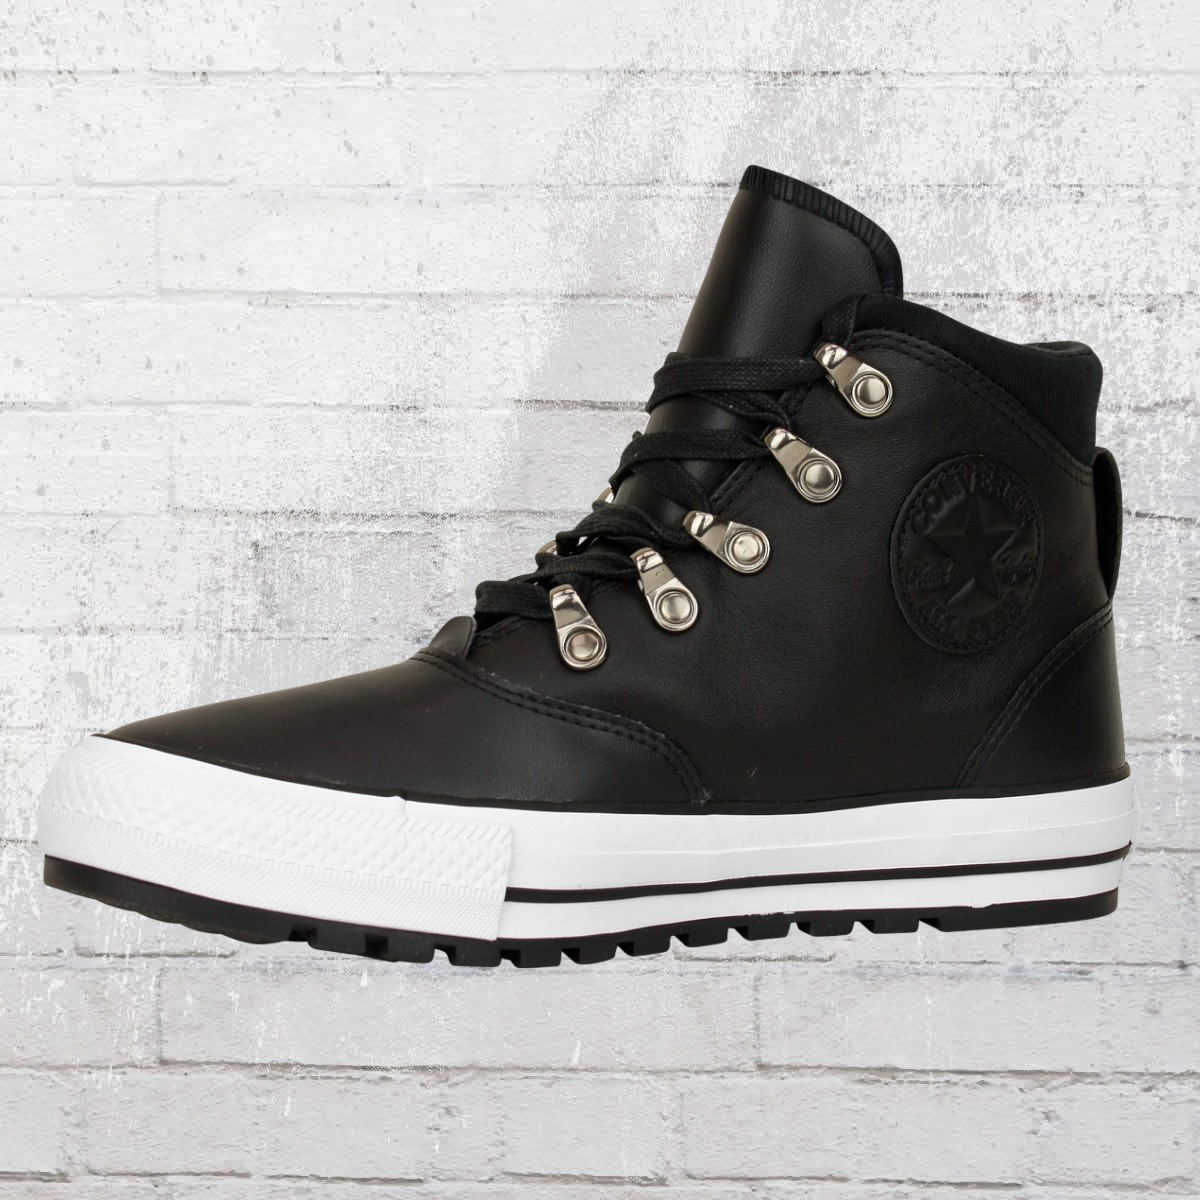 677a9561c1a073 Converse Leather Shoes 557916 C Ember Boot High black white. ›‹ «